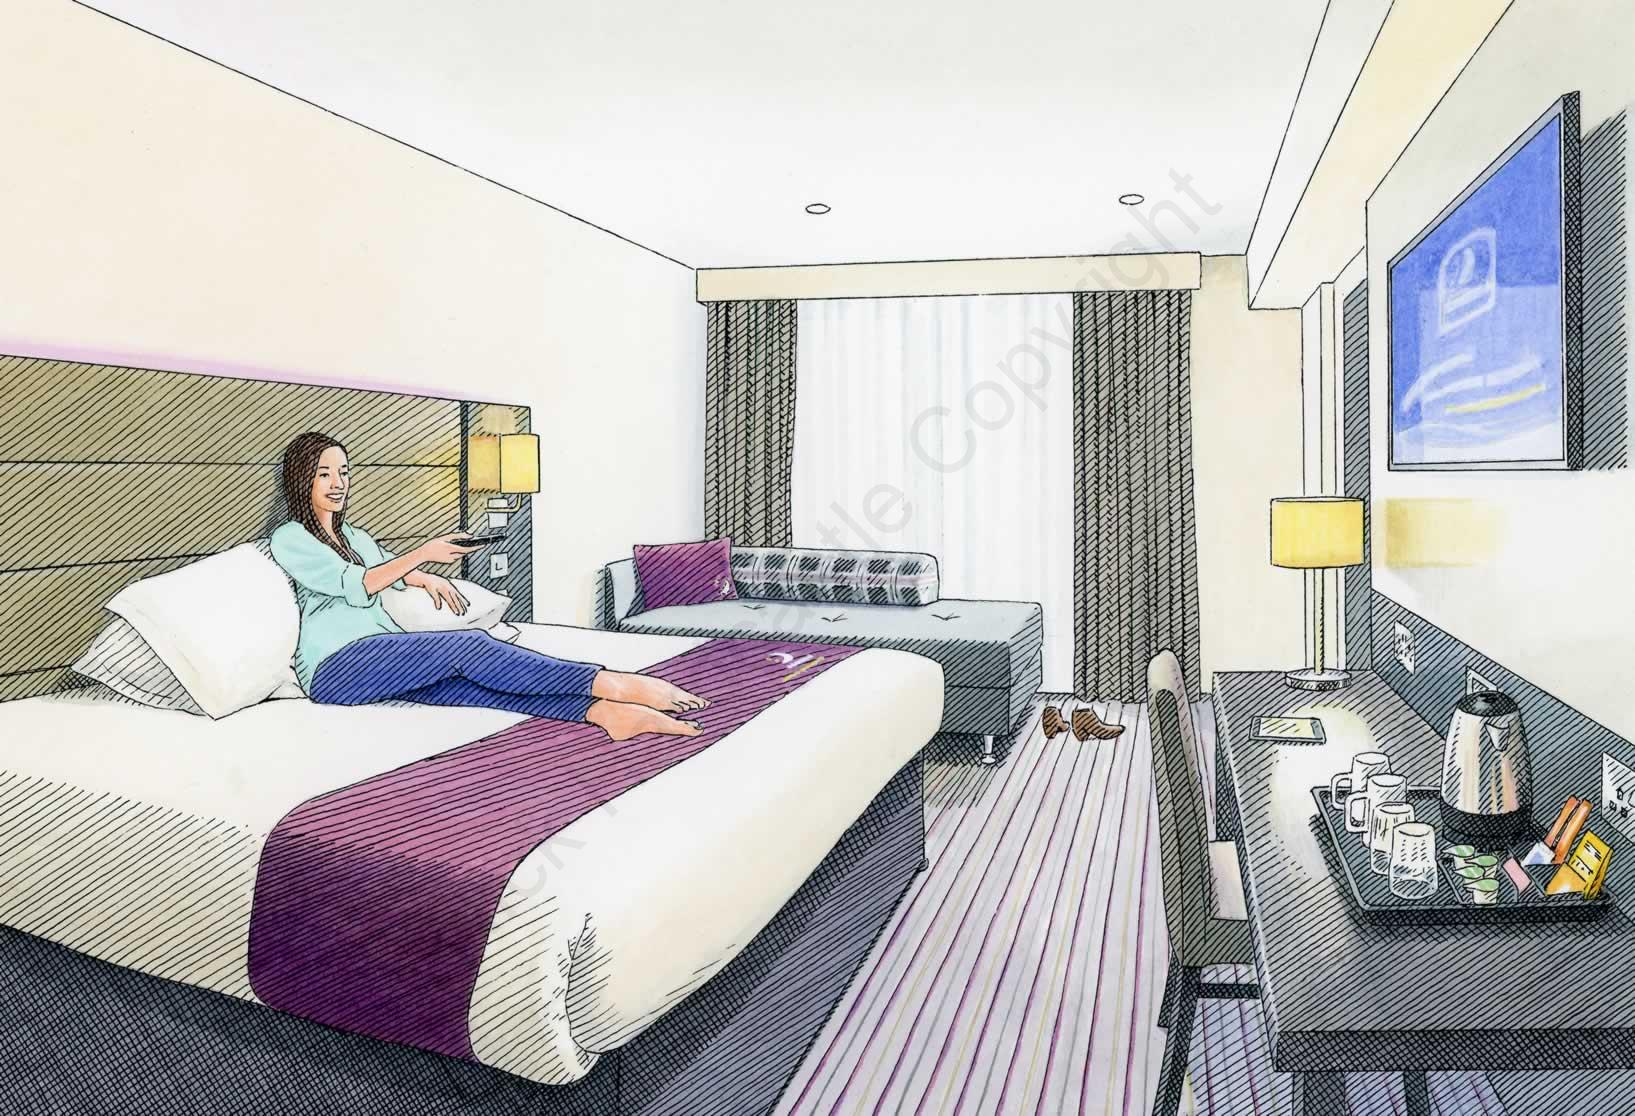 Premier Inn room-Golin